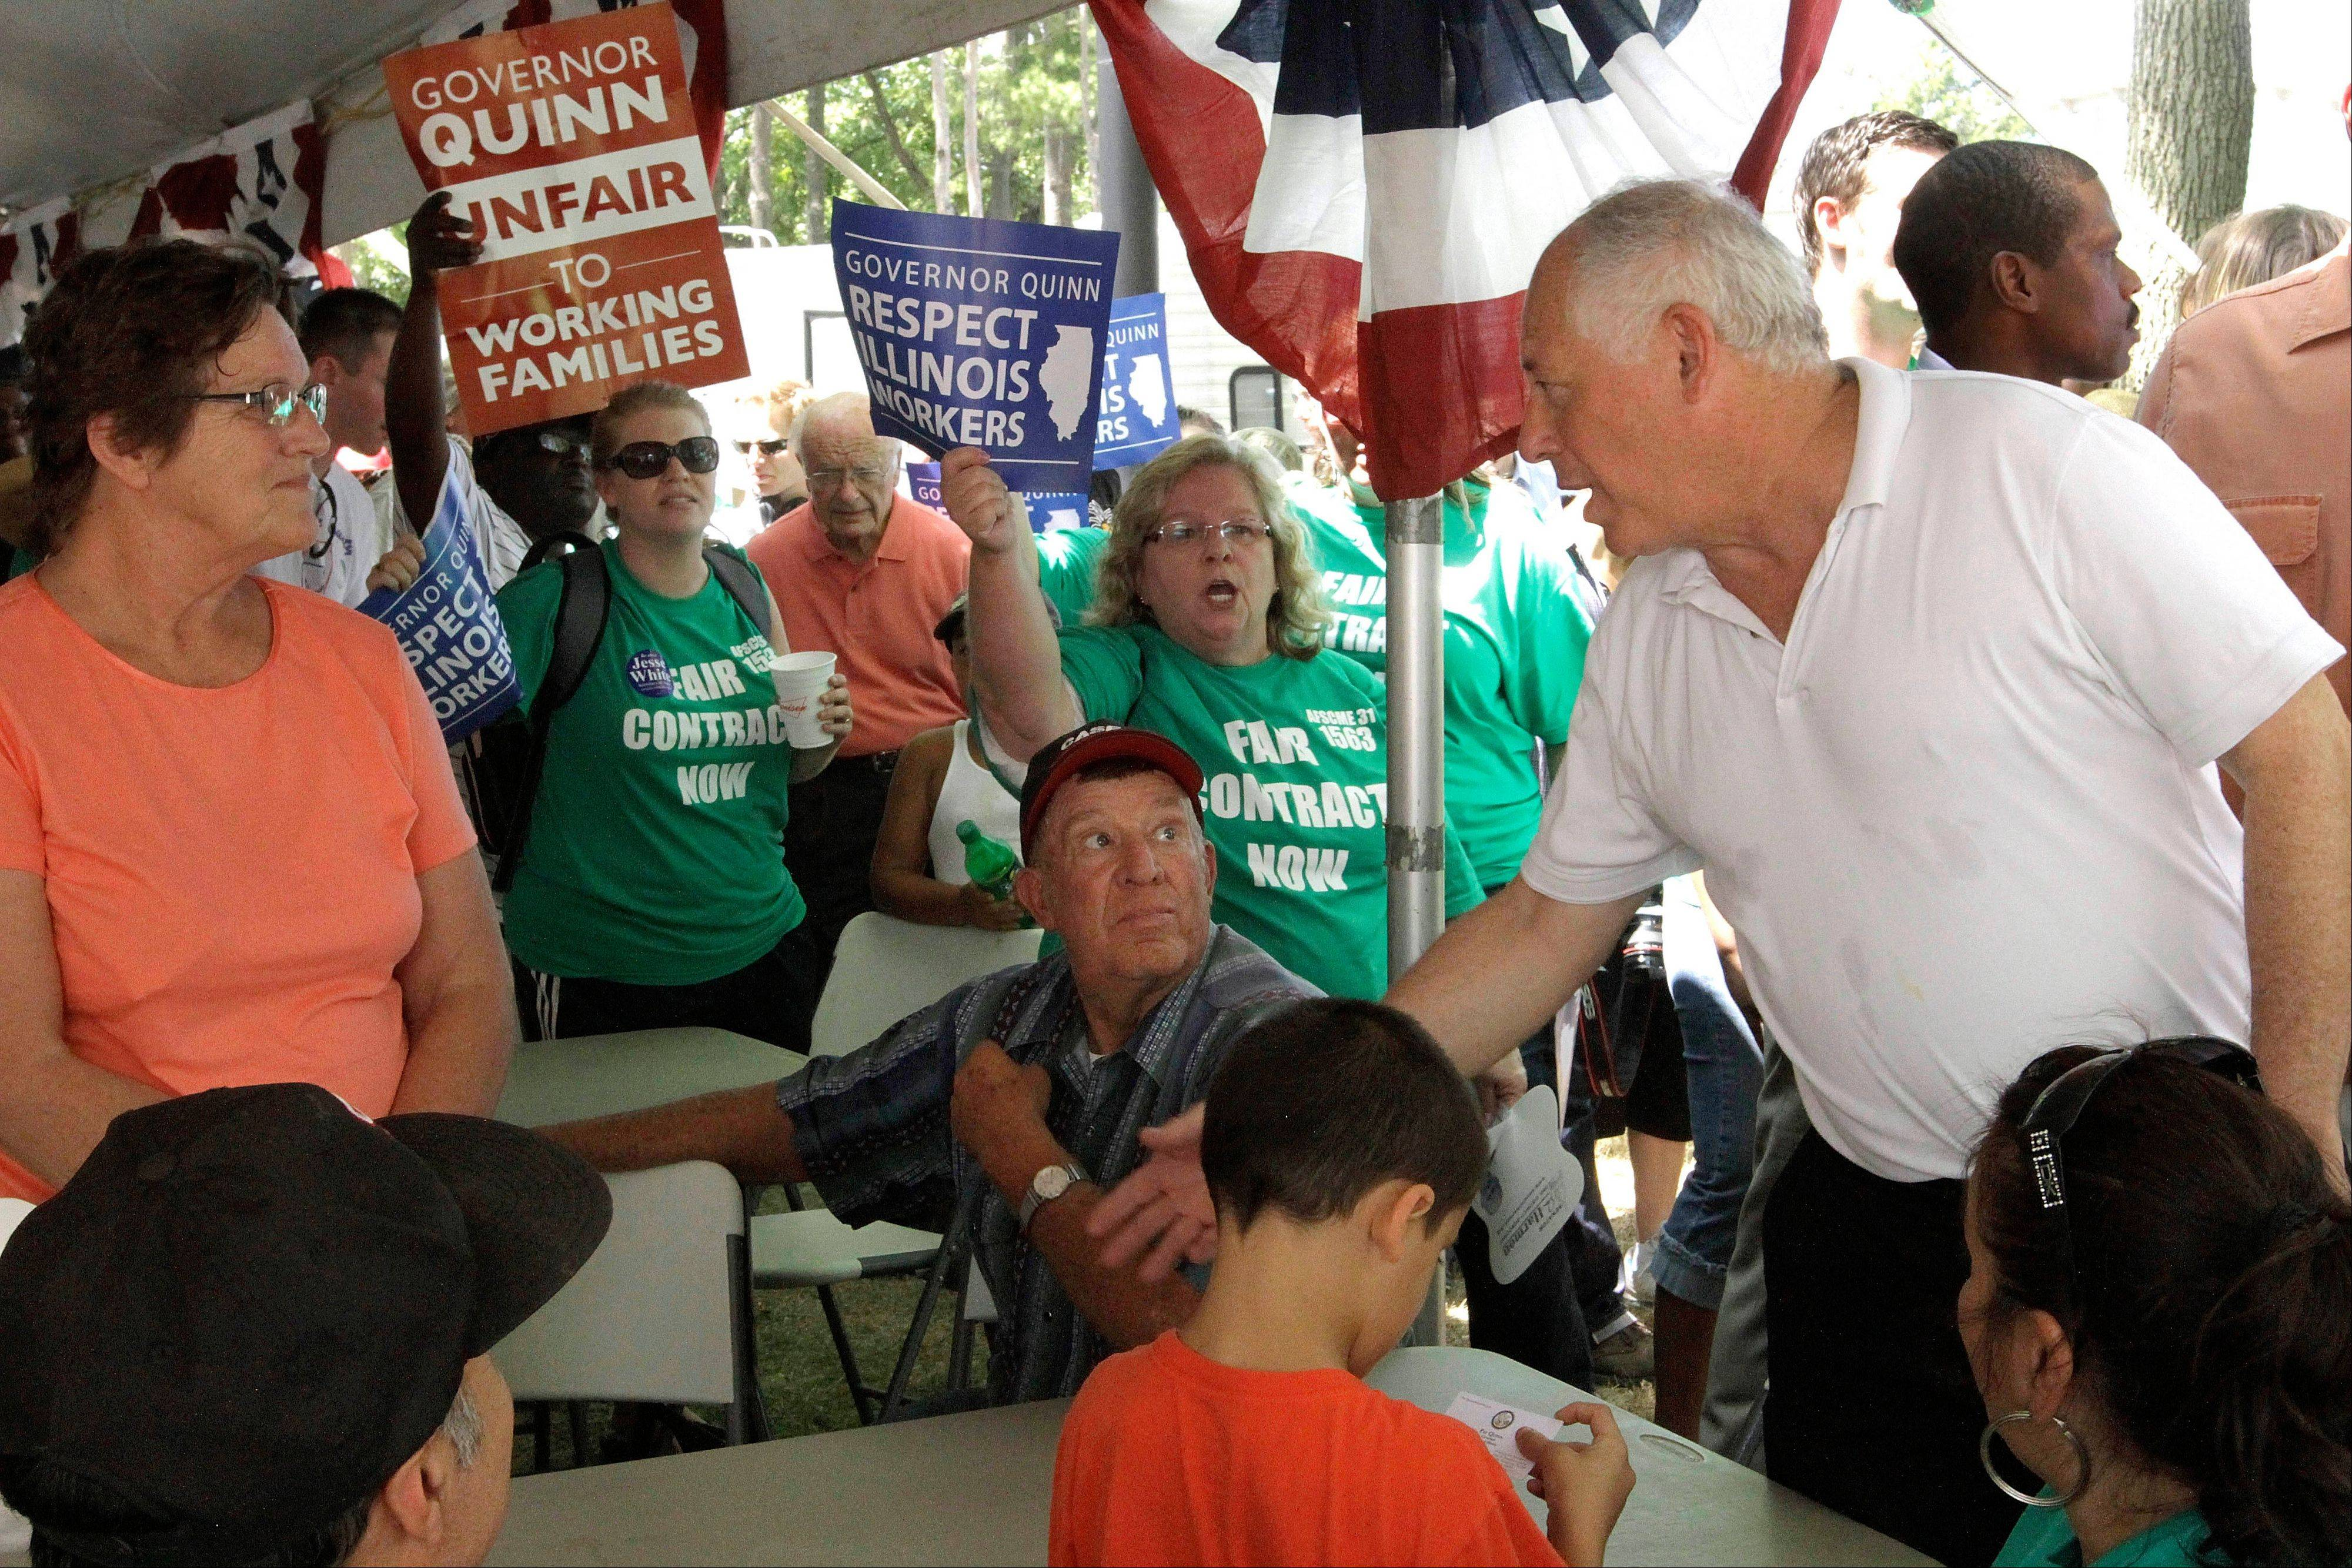 Surrounded by booing union members, supporters and labor leaders, Gov. Pat Quinn, right, still tries to greet those attending the Governor's Day rally at the Illinois State Fair yesterday.